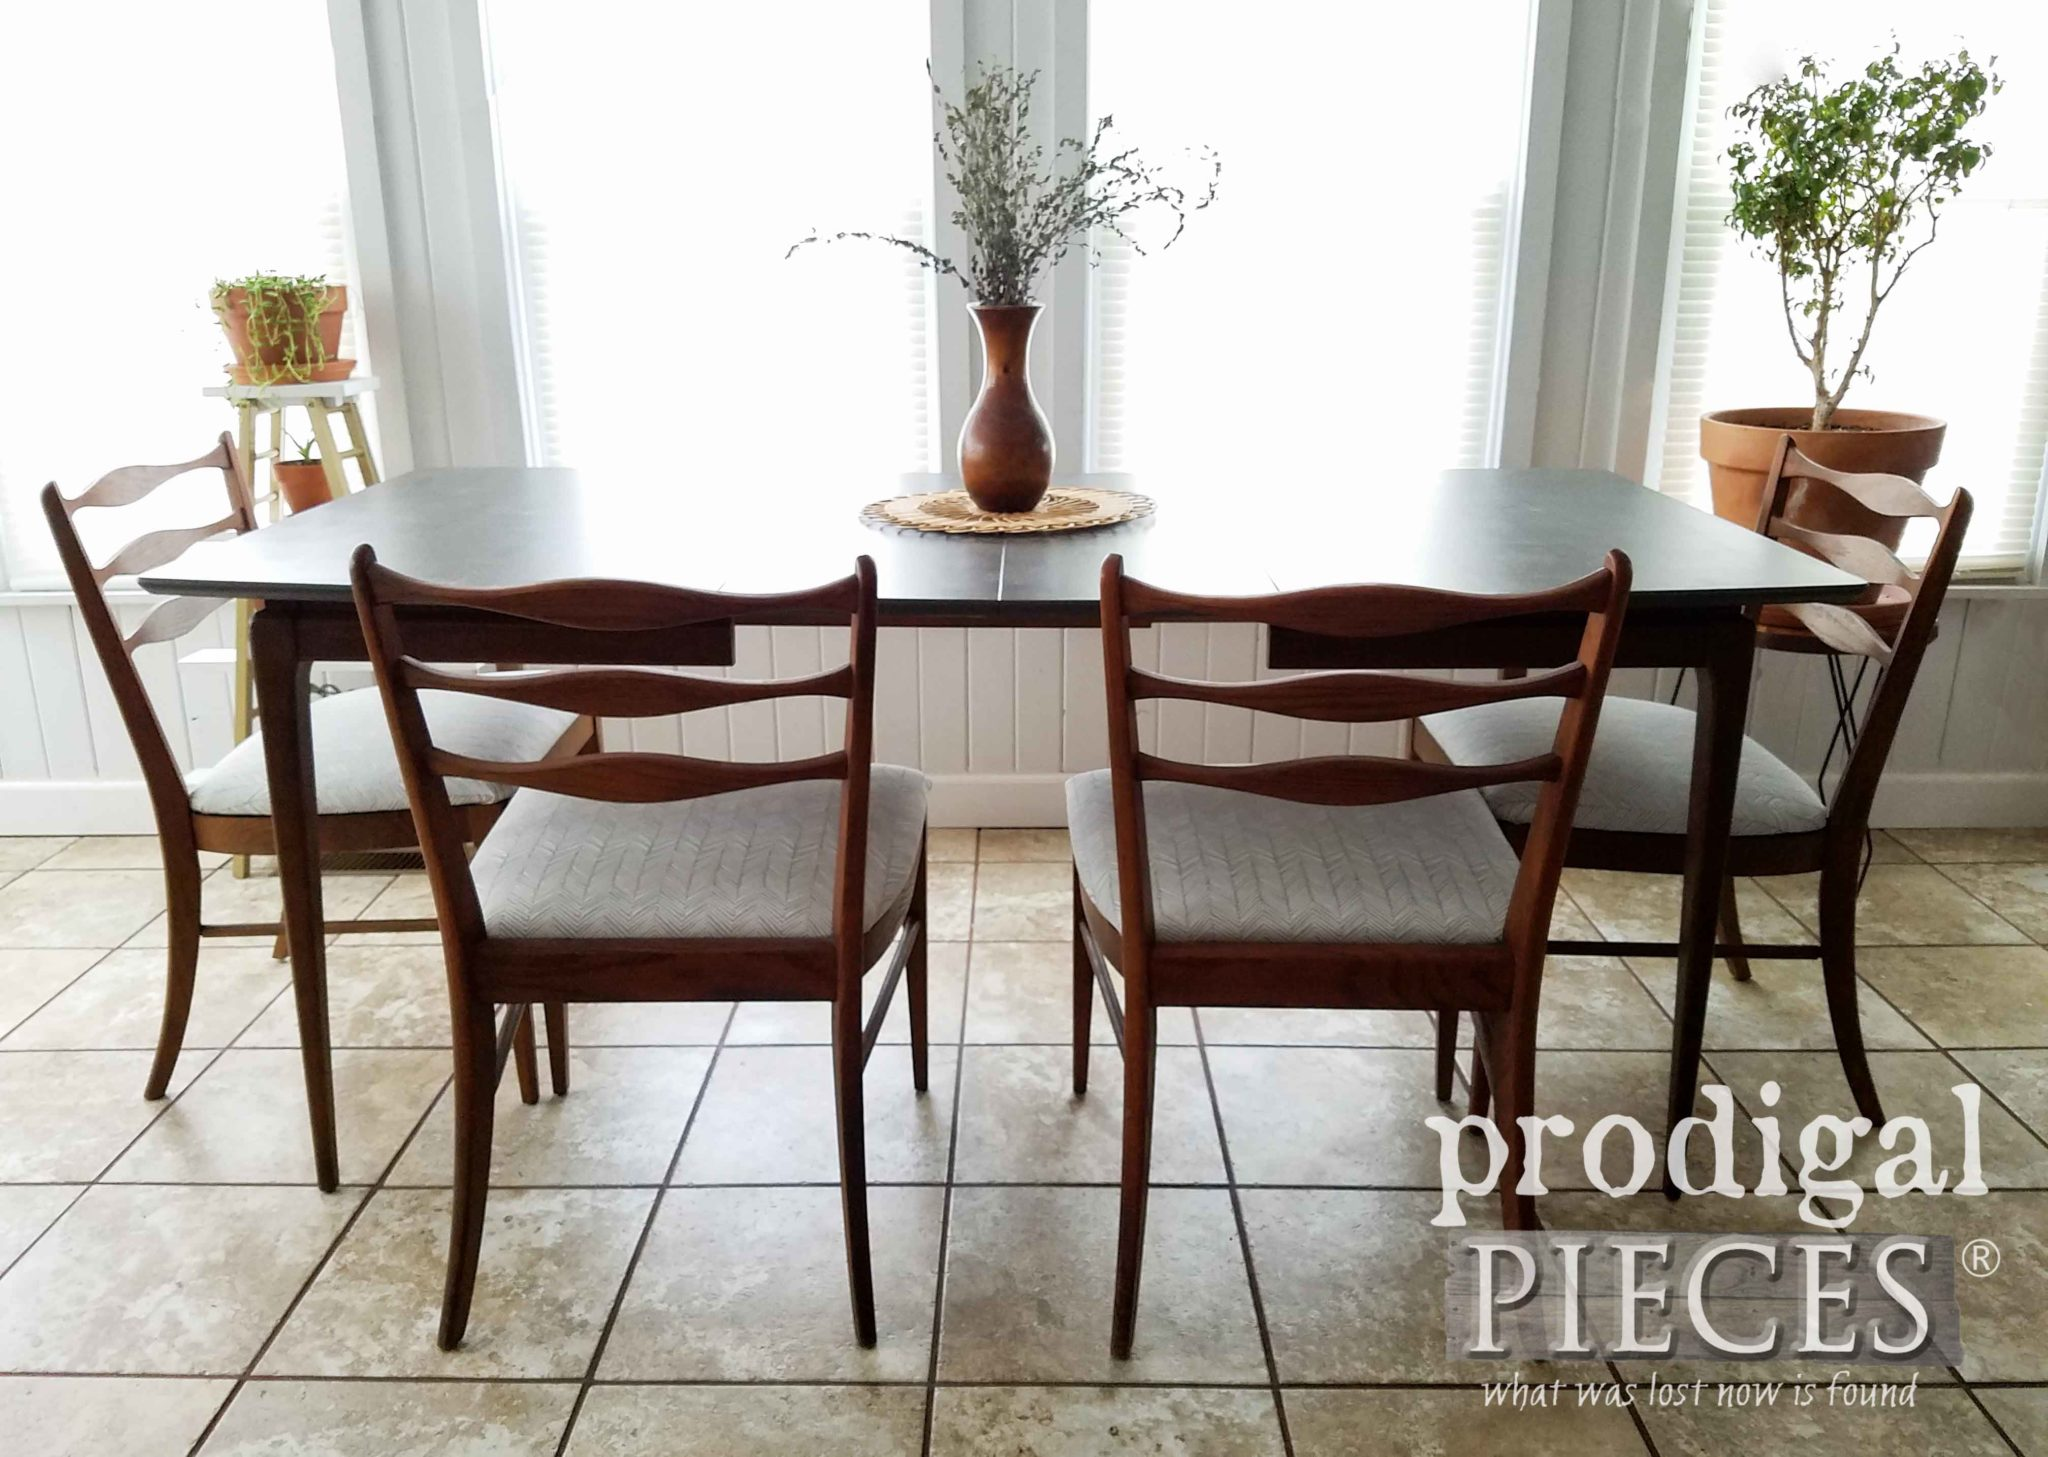 Vintage Mid Century Modern Extension Dining Table with Four Chairs by Larissa of Prodigal Pieces | prodigalpieces.com